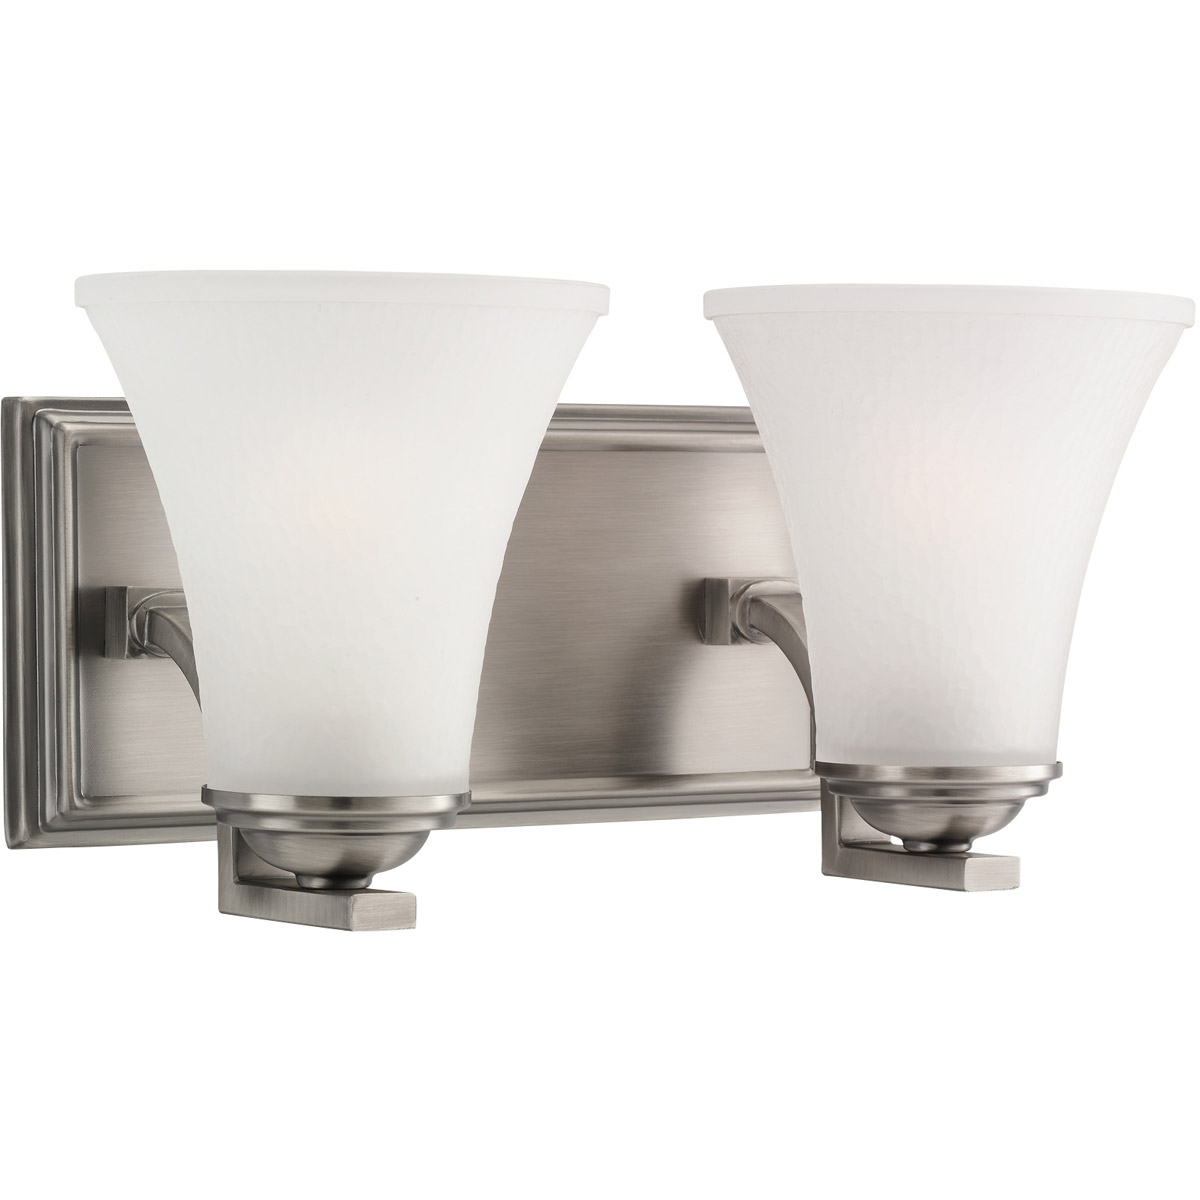 Sea Gull Lighting Somerton 2 Light Bath Vanity in Antique Brushed Nickel 44375-965 photo